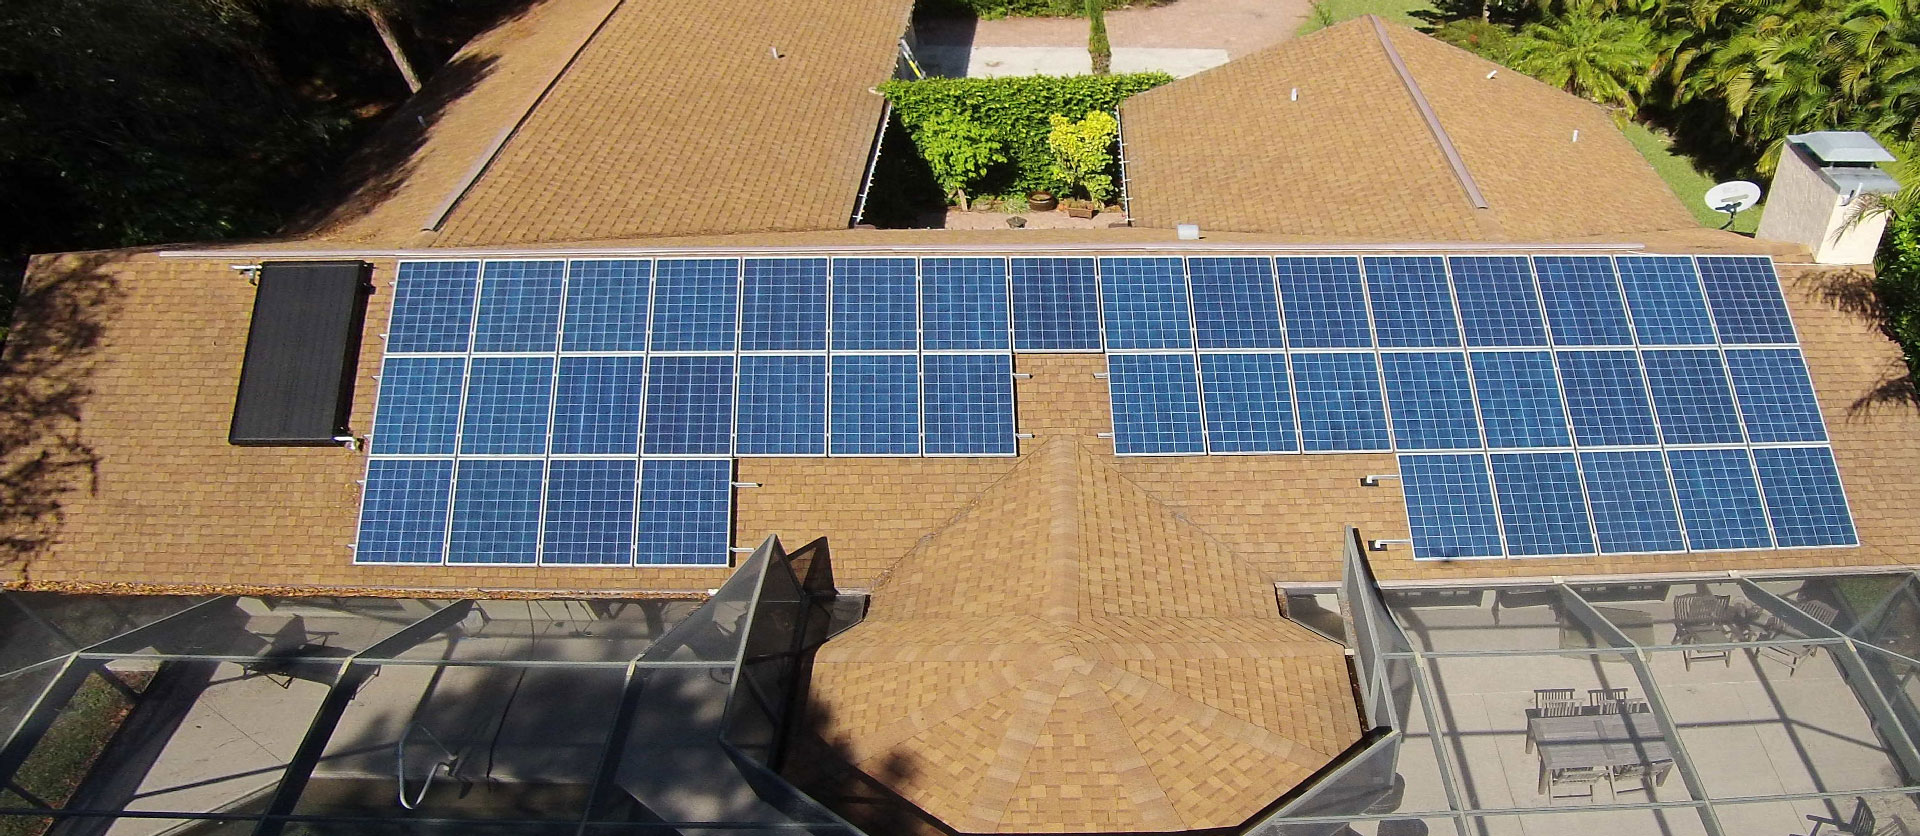 Solar Electric Systems in Fort Myers, FL (Photovoltaic)